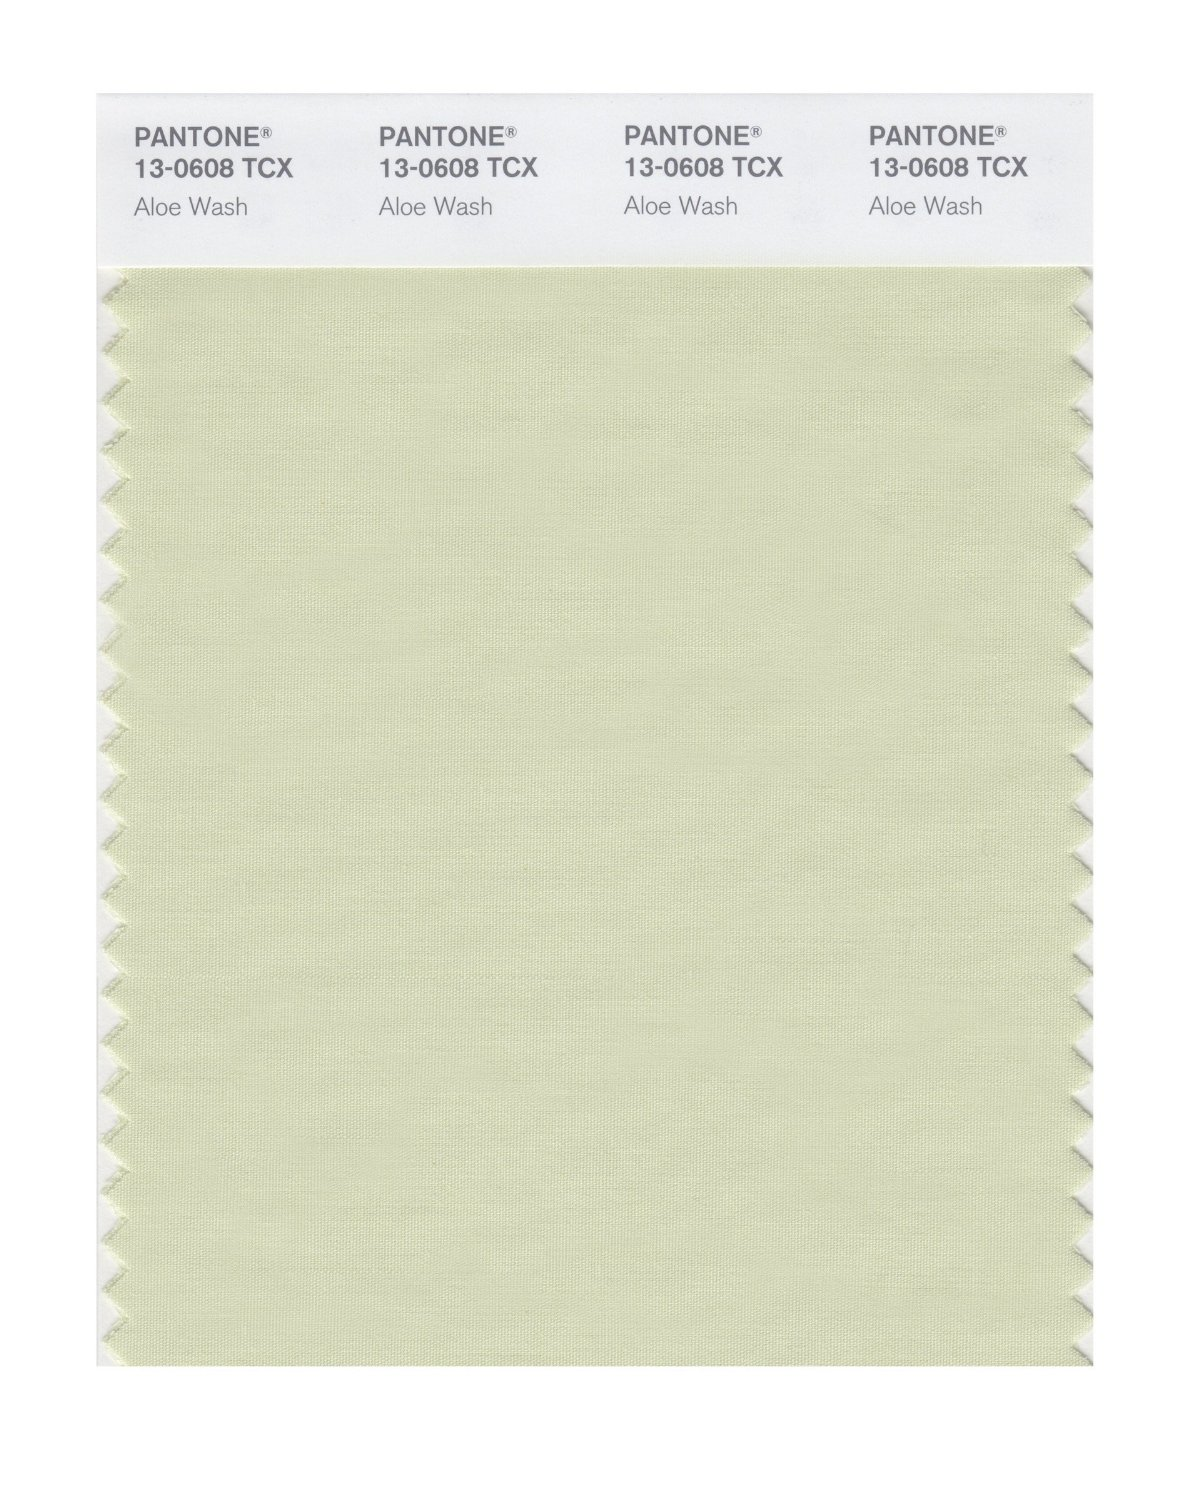 Pantone Smart Swatch 13-0608 Aloe Wash